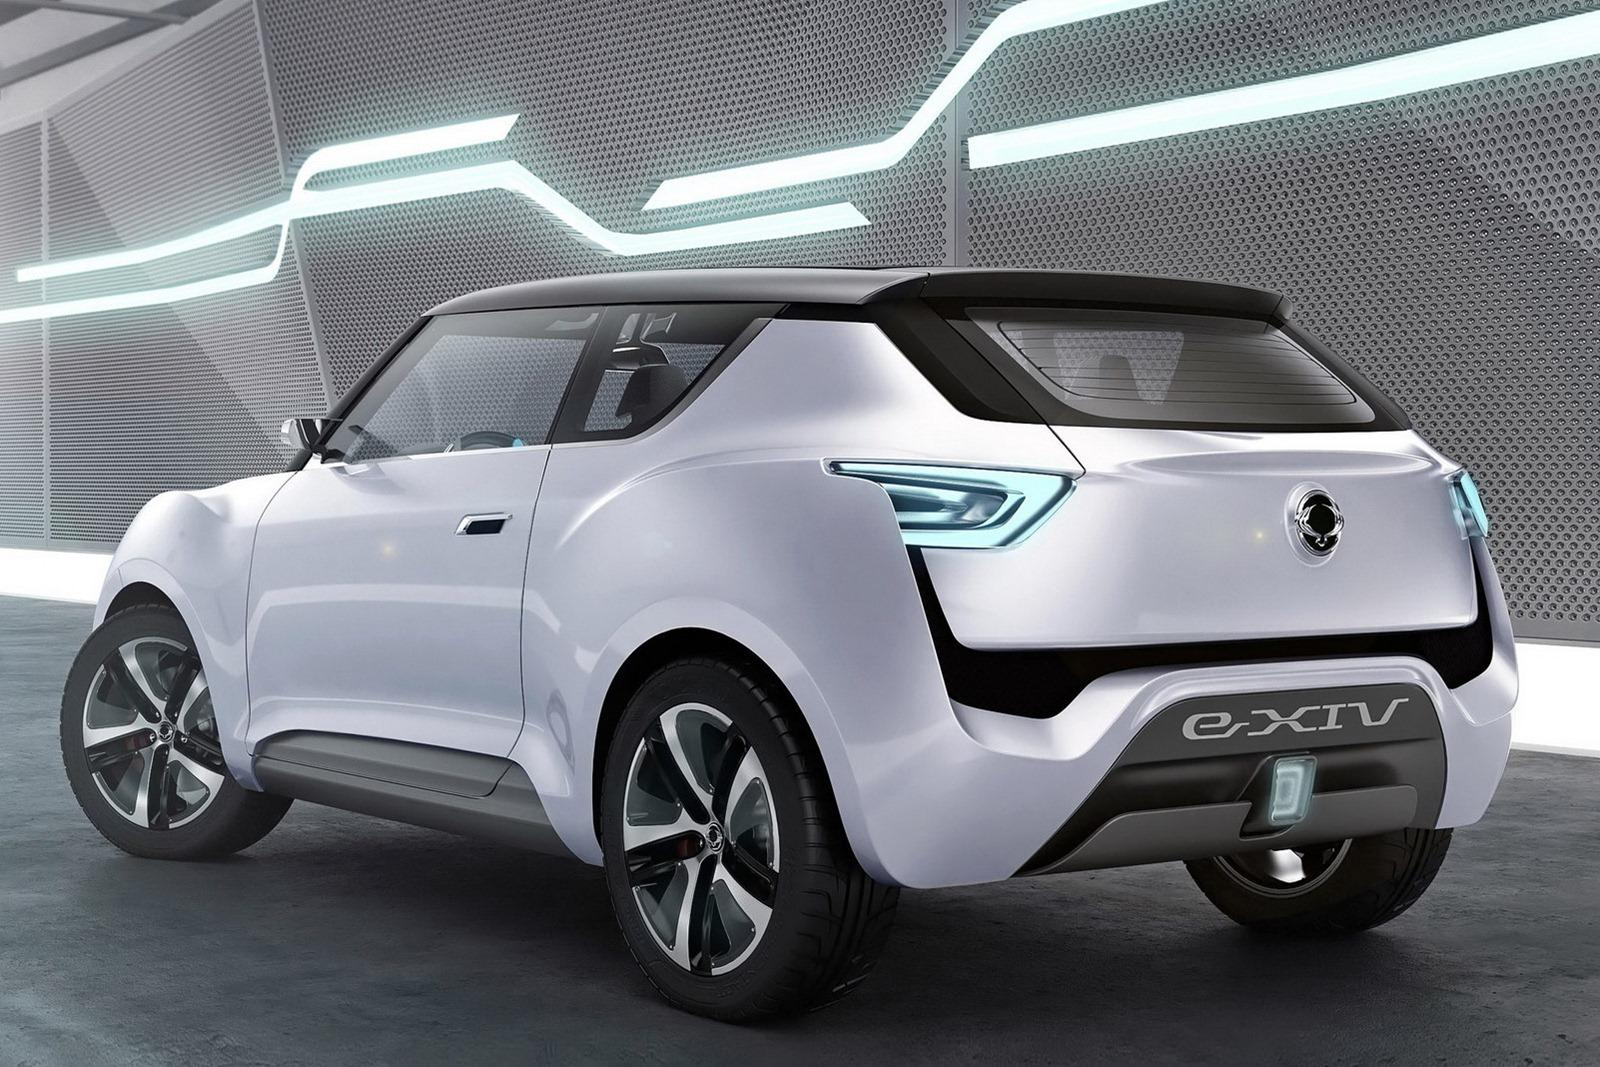 2014 SsangYong E XIV Concept 2 2014 SsangYong E XIV Concept to debut at the Paris Motor Show